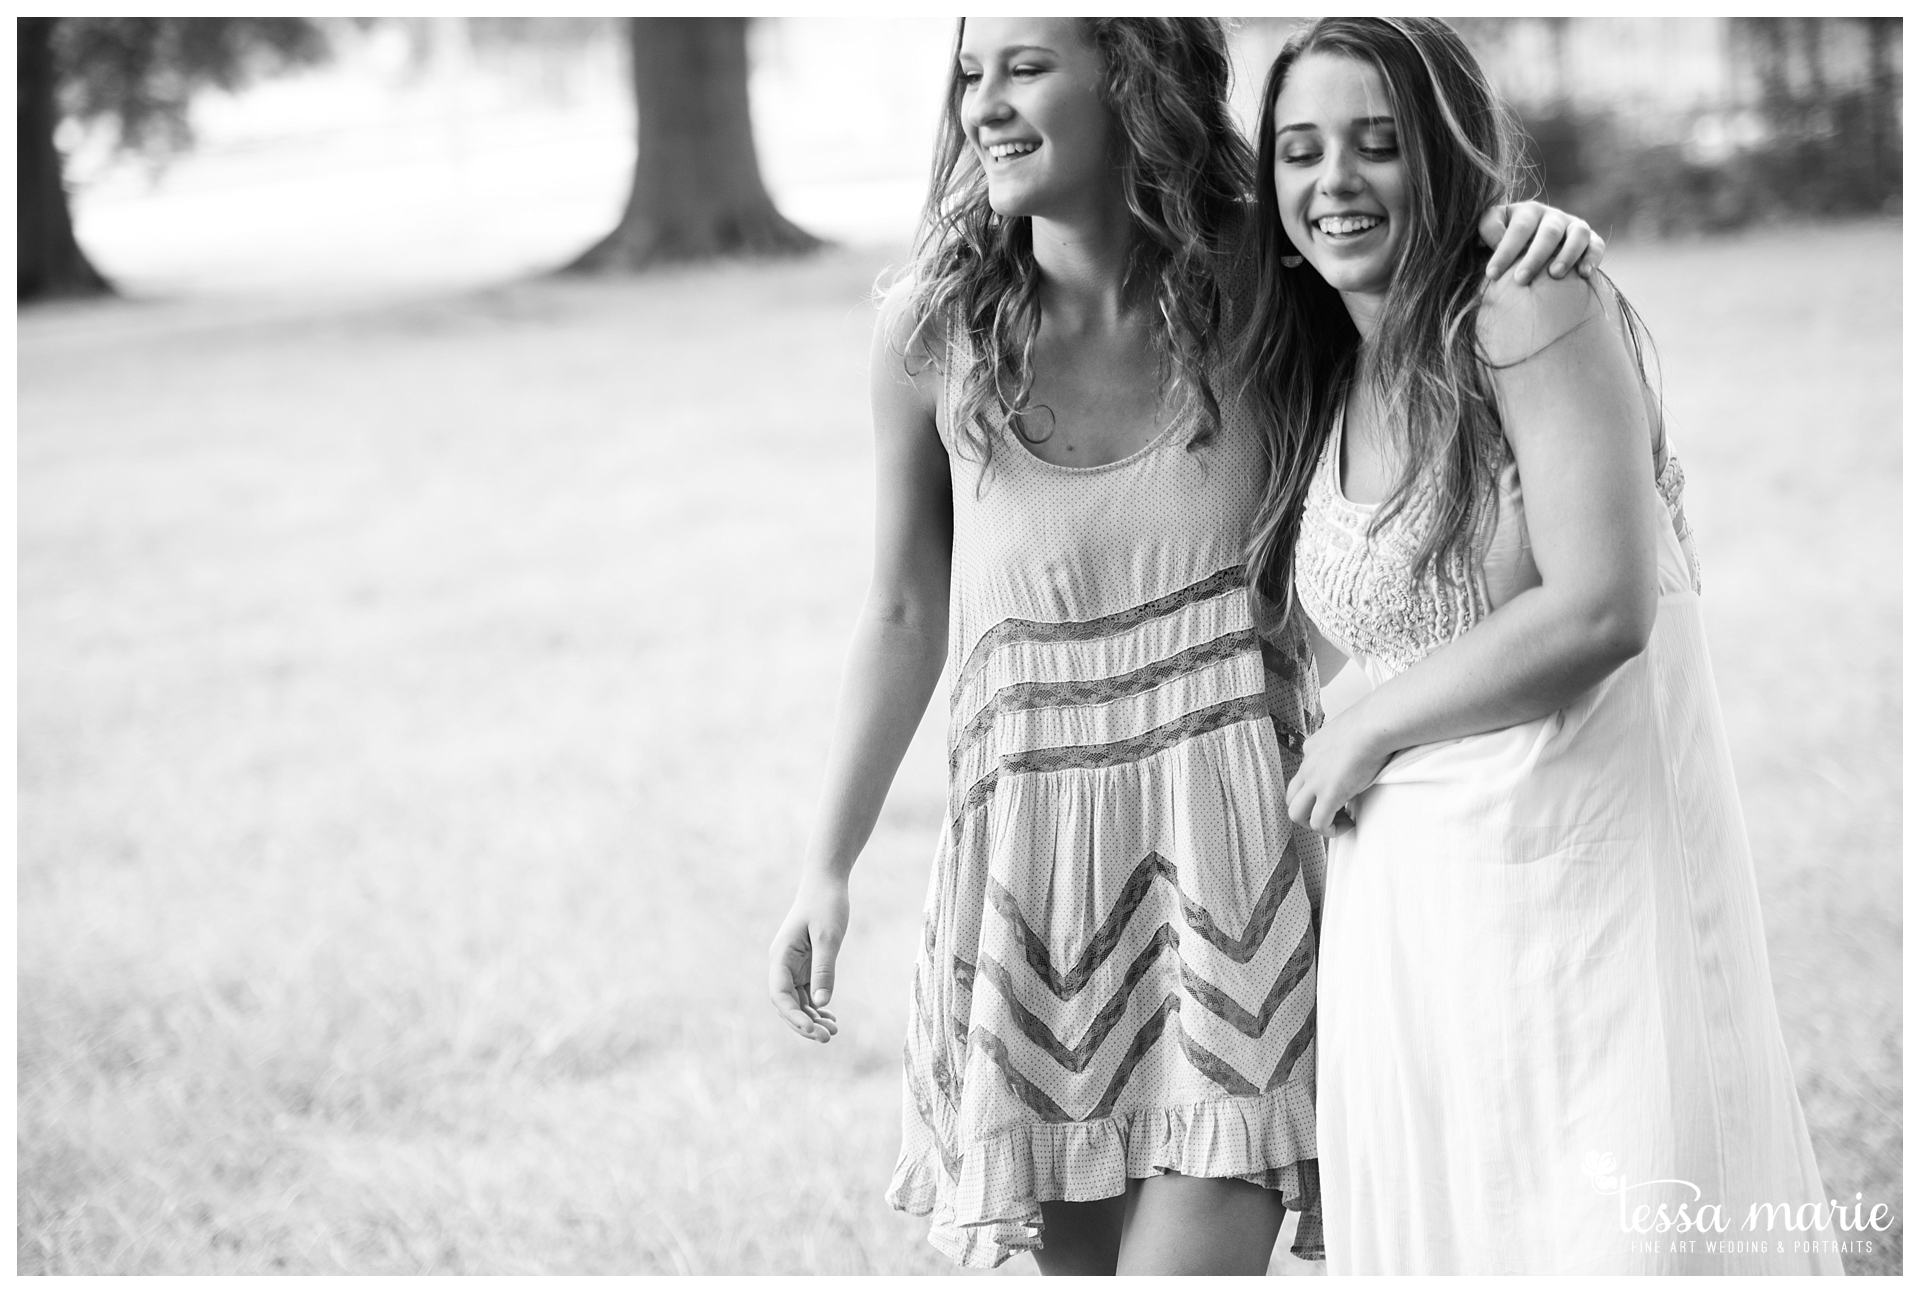 tessa_marie_weddings_legacy_story_focused_wedding_pictures_atlanta_wedding_photographer_family_pictures_portrait_Fine_art_memories_mothers_day_spring_moments_0401